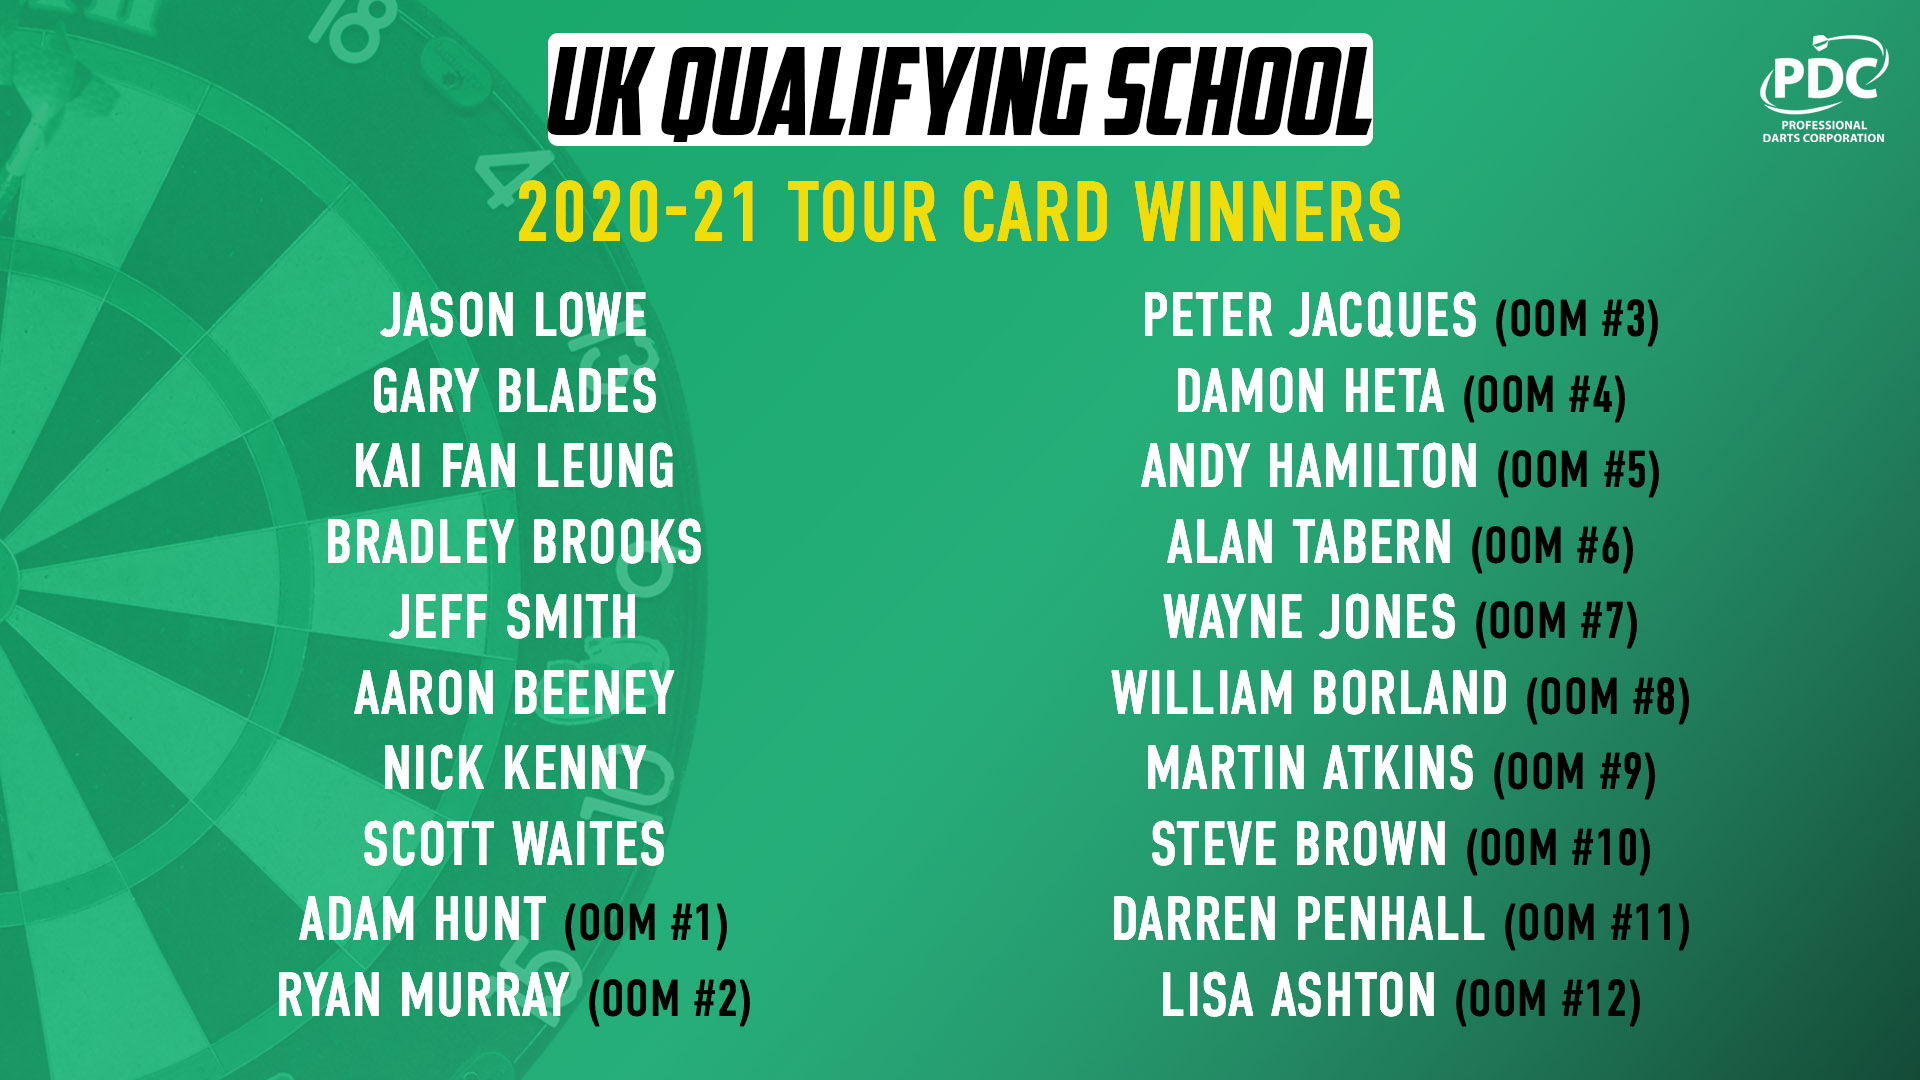 UK Q School winners (PDC)